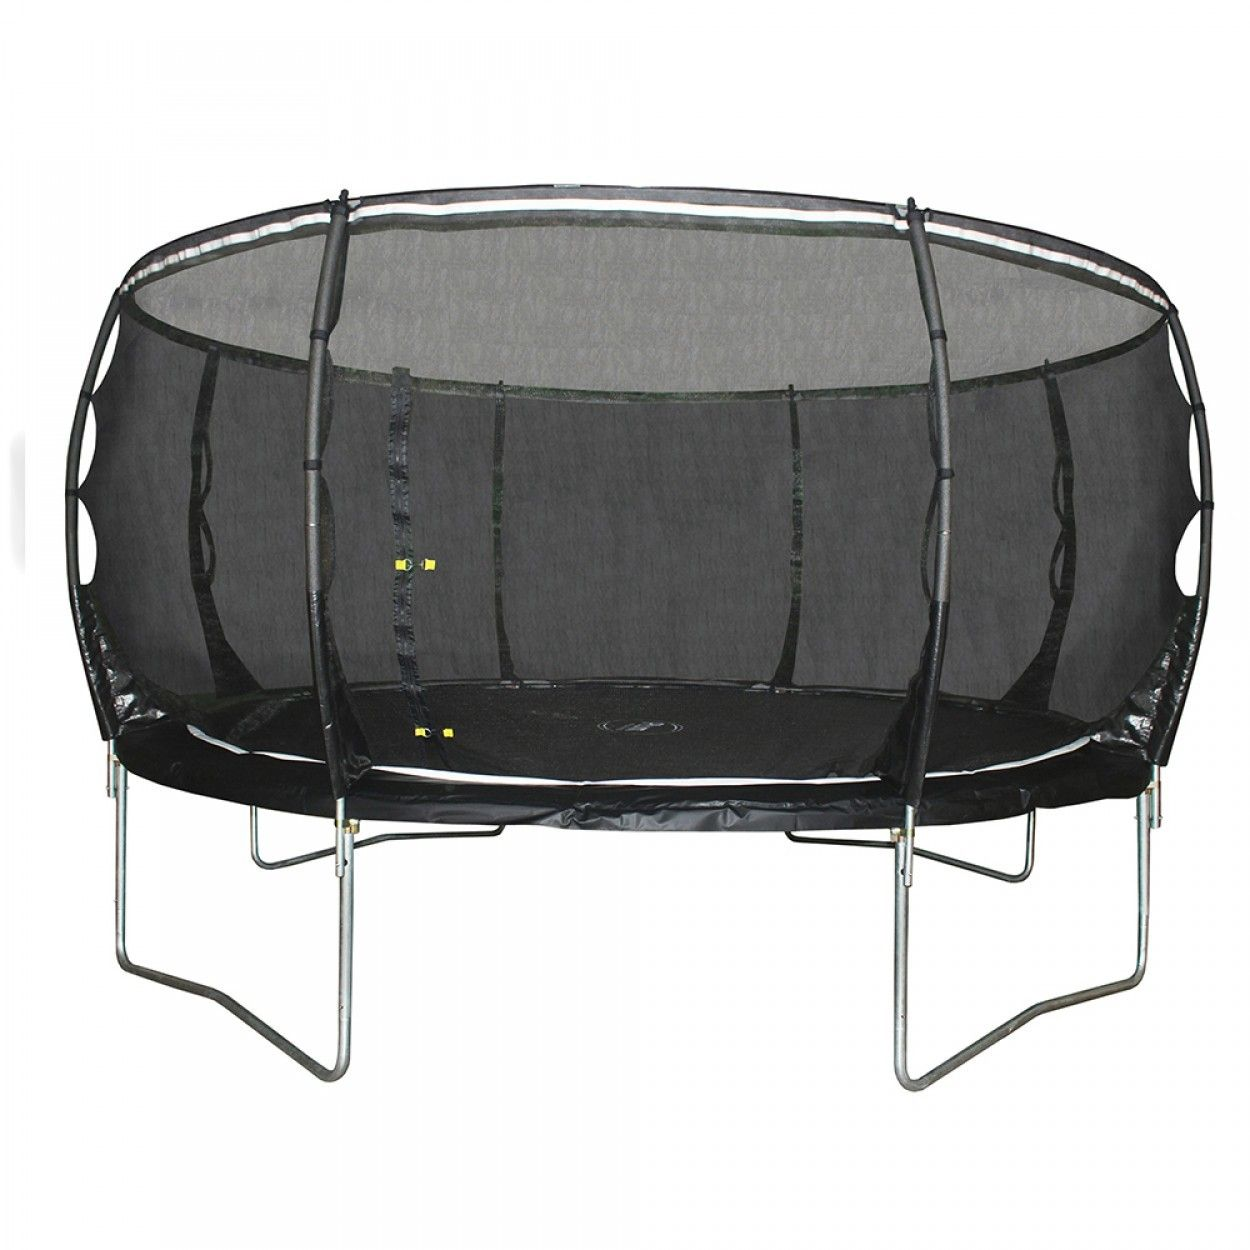 Zupapa 14ft 12ft Trampoline With Enclosure Net And Cover Best